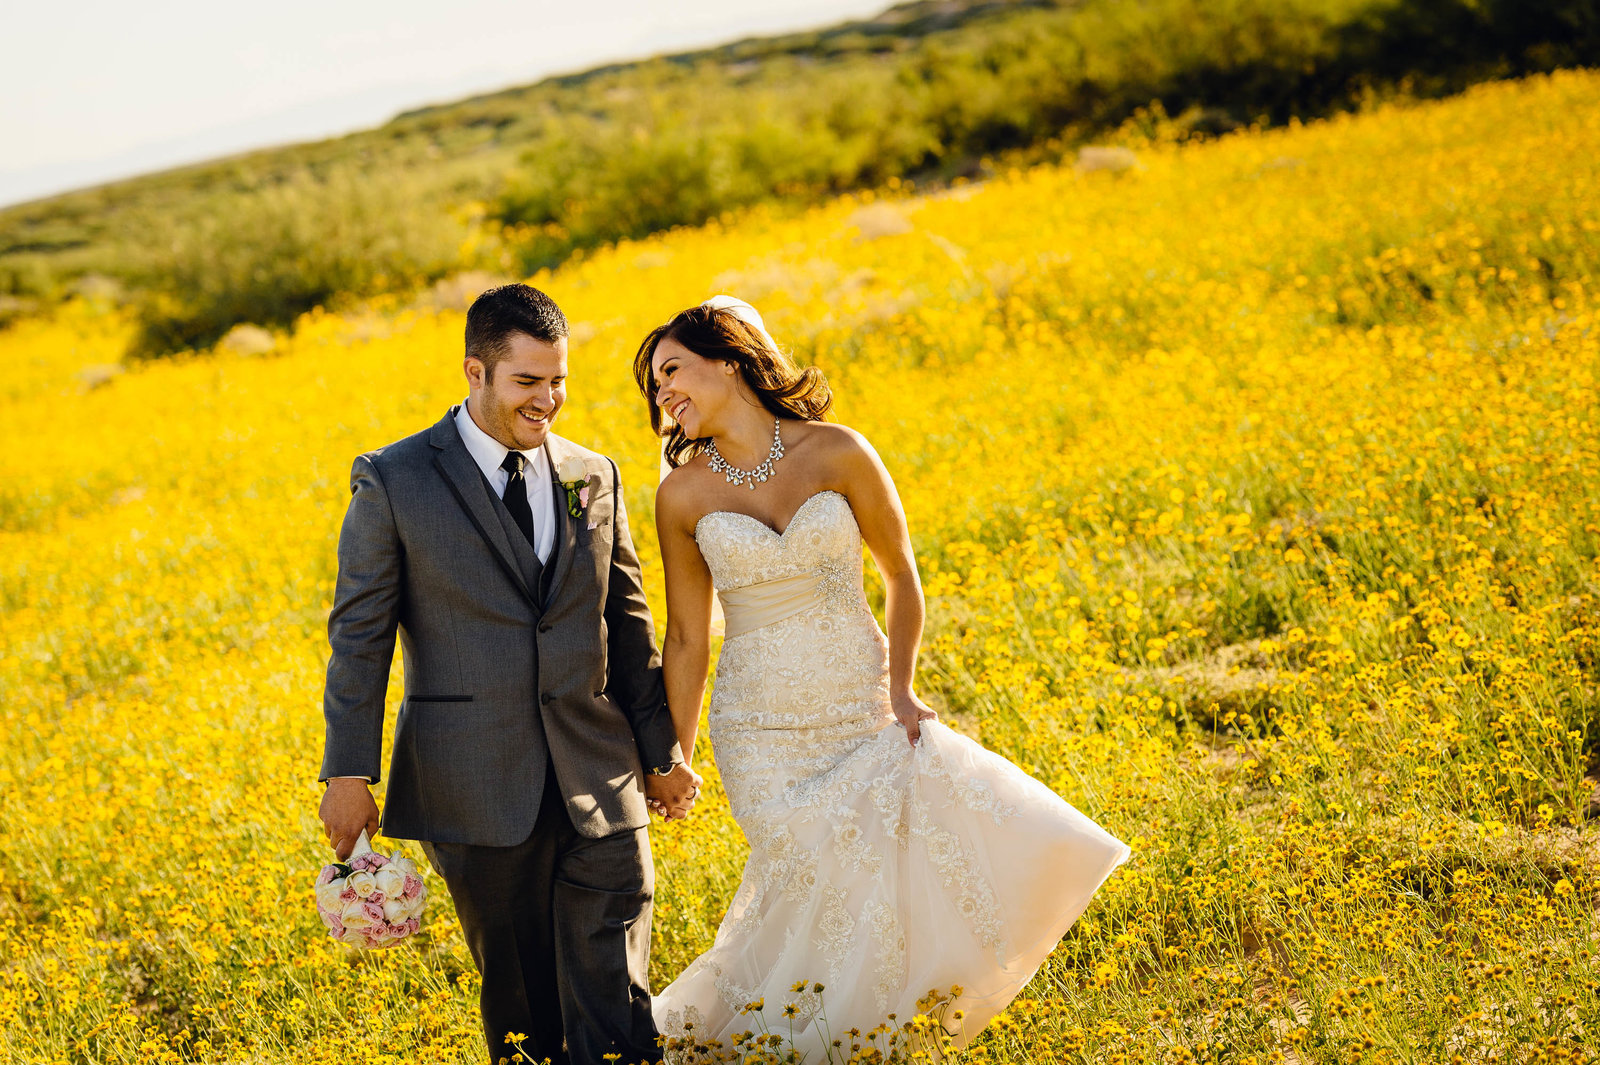 222-El-paso-wedding-photographer-El Paso Wedding Photographer_P02